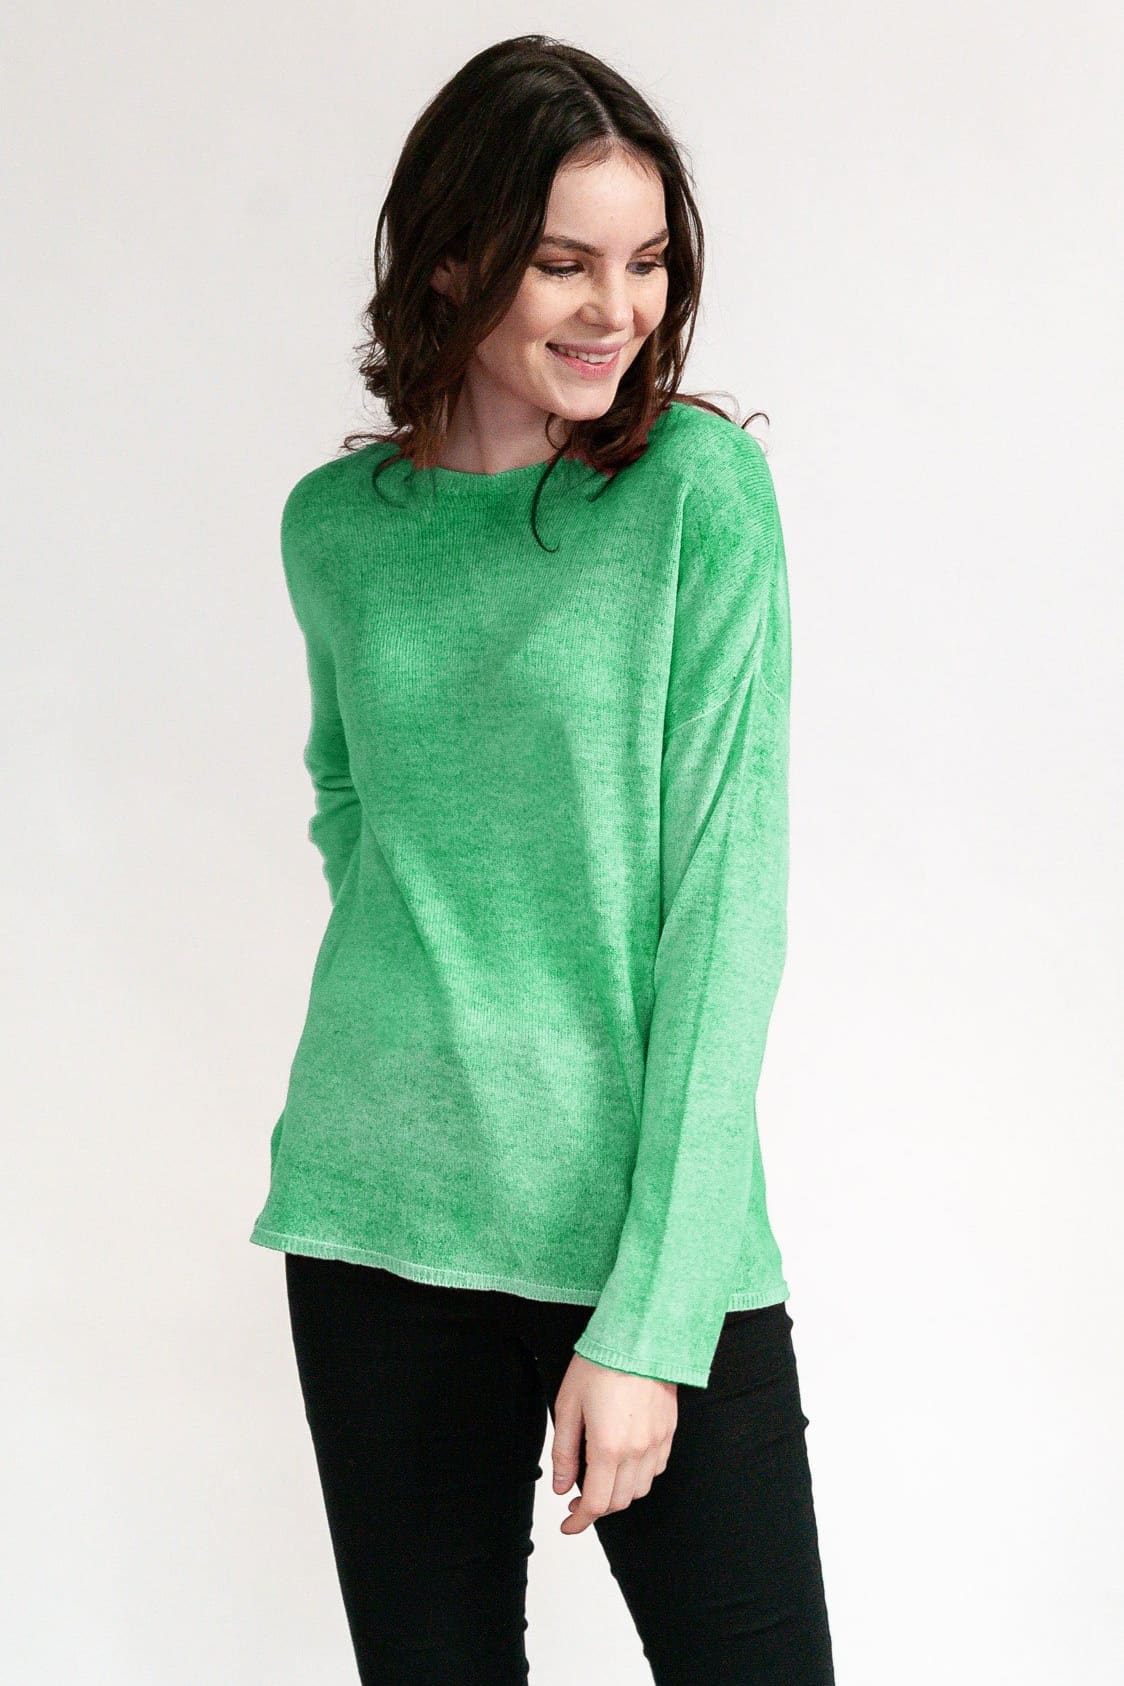 Dalby Cashmere - Jade - Sweaters